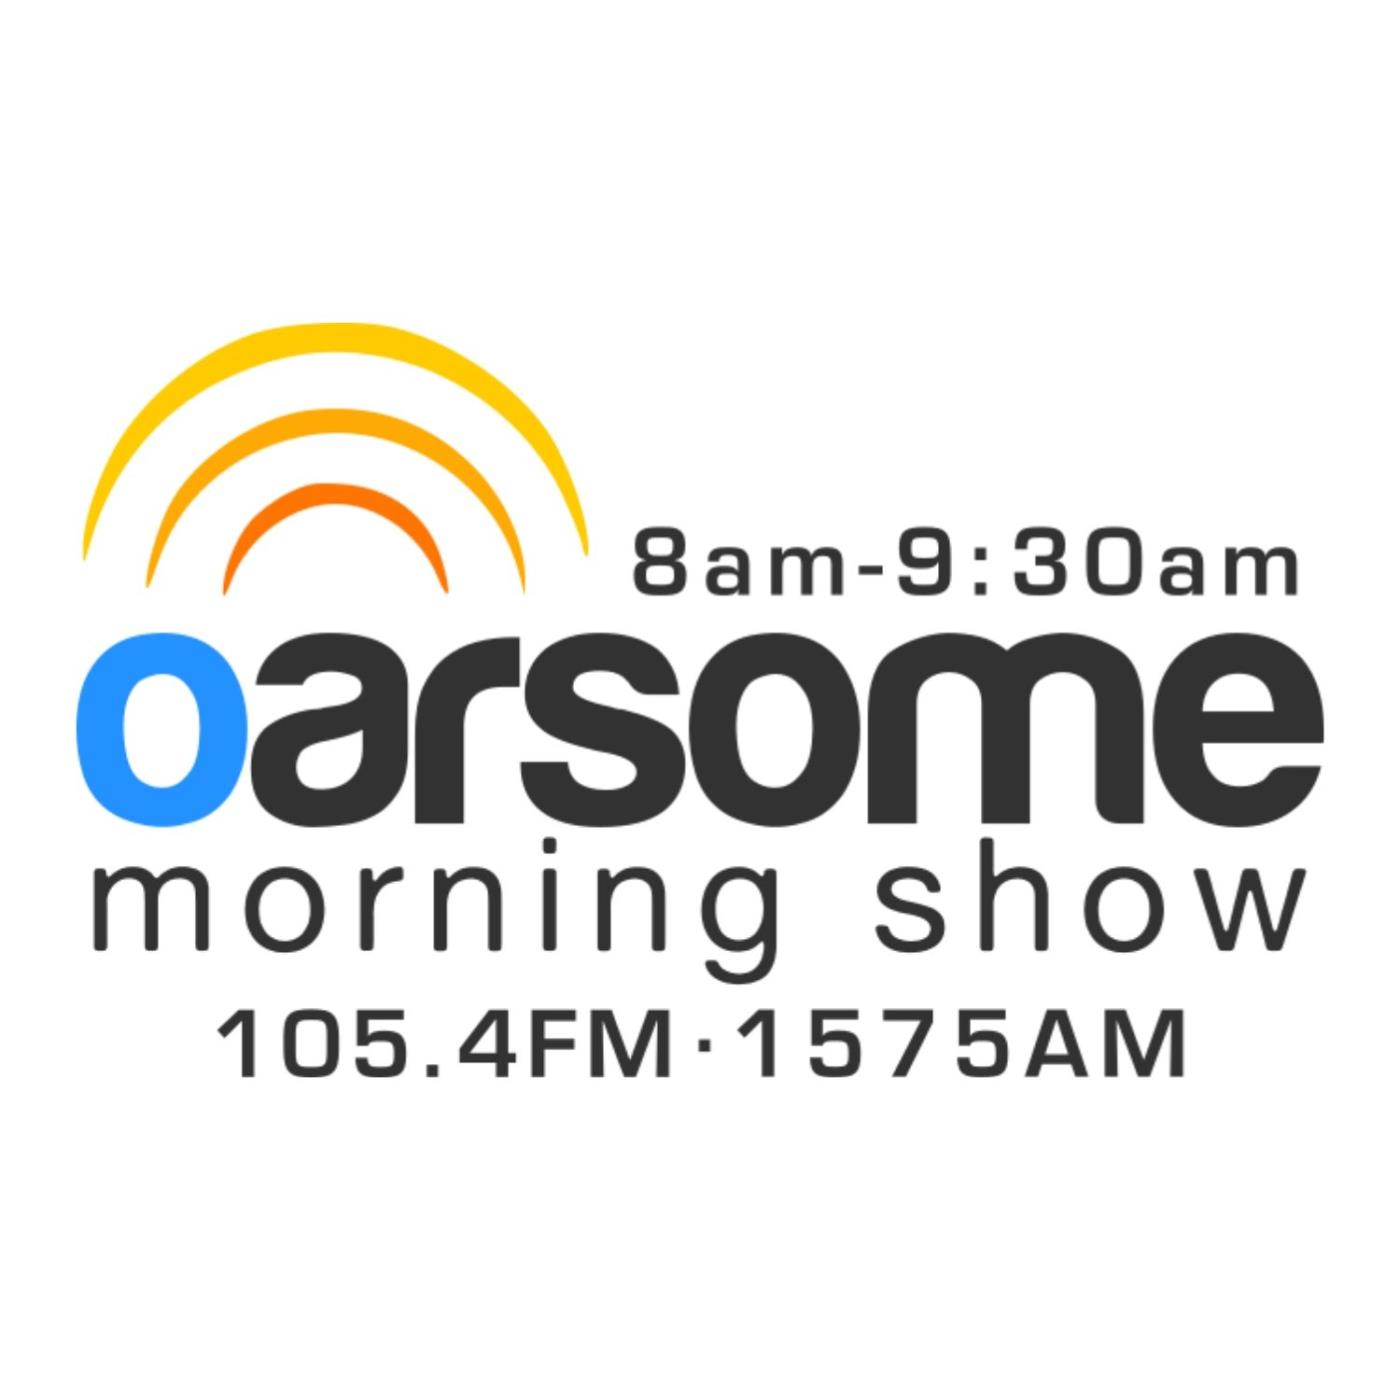 OARsome Morning Show - 28-01-2021 - Mayor Aaron Hawkins - 10 Year Plan